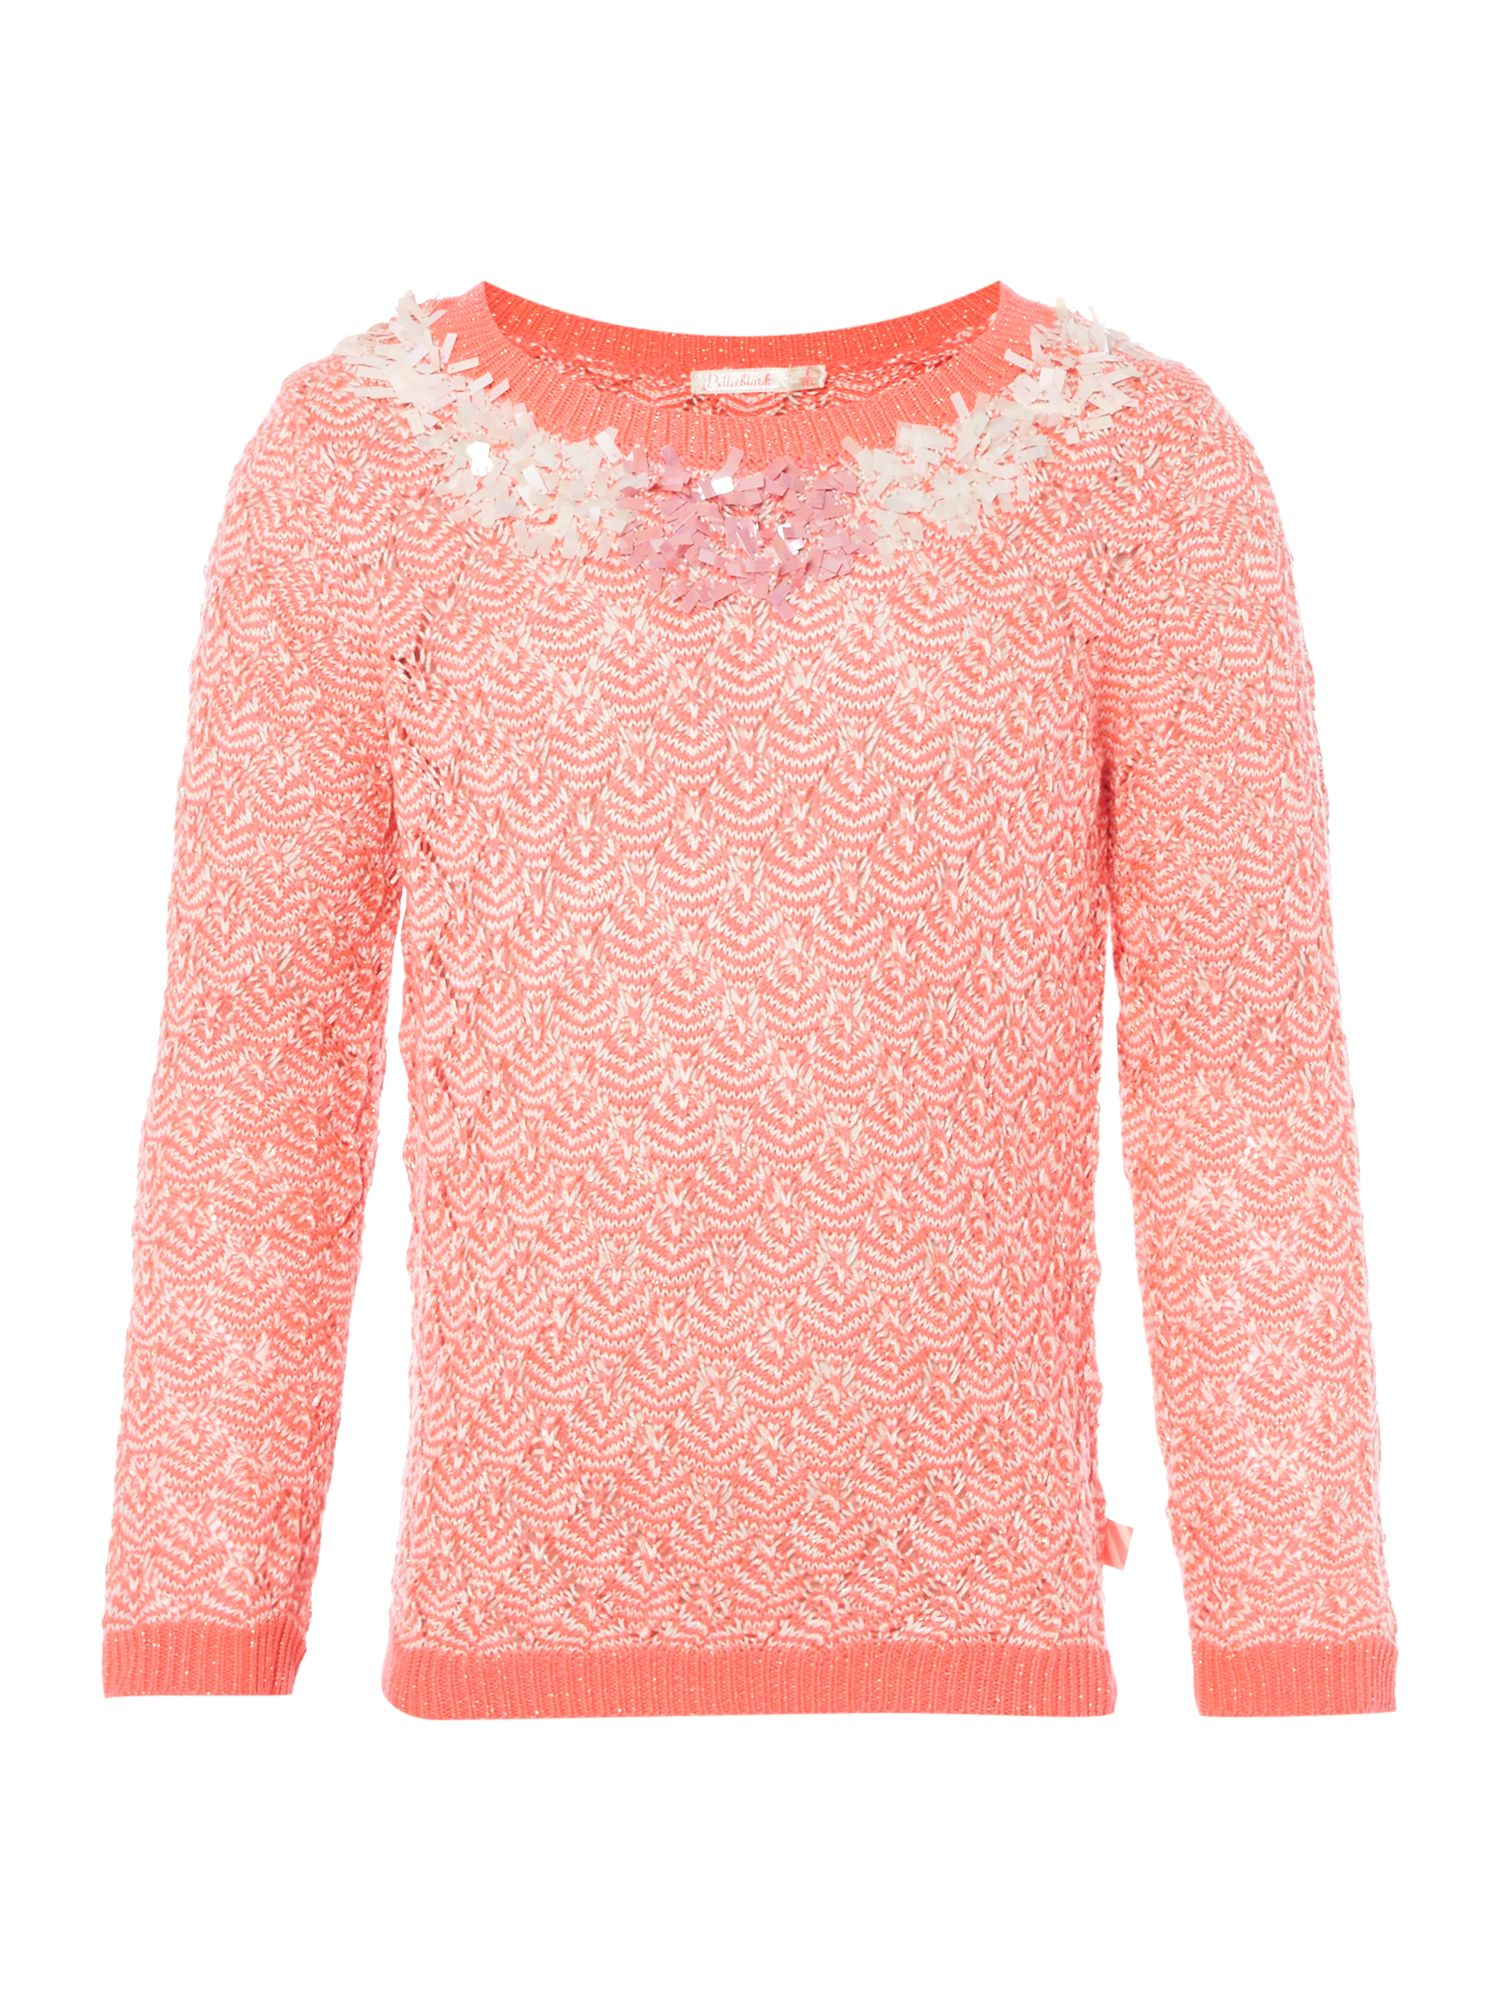 Billieblush Billieblush Girls Knitted Sweater, Pink